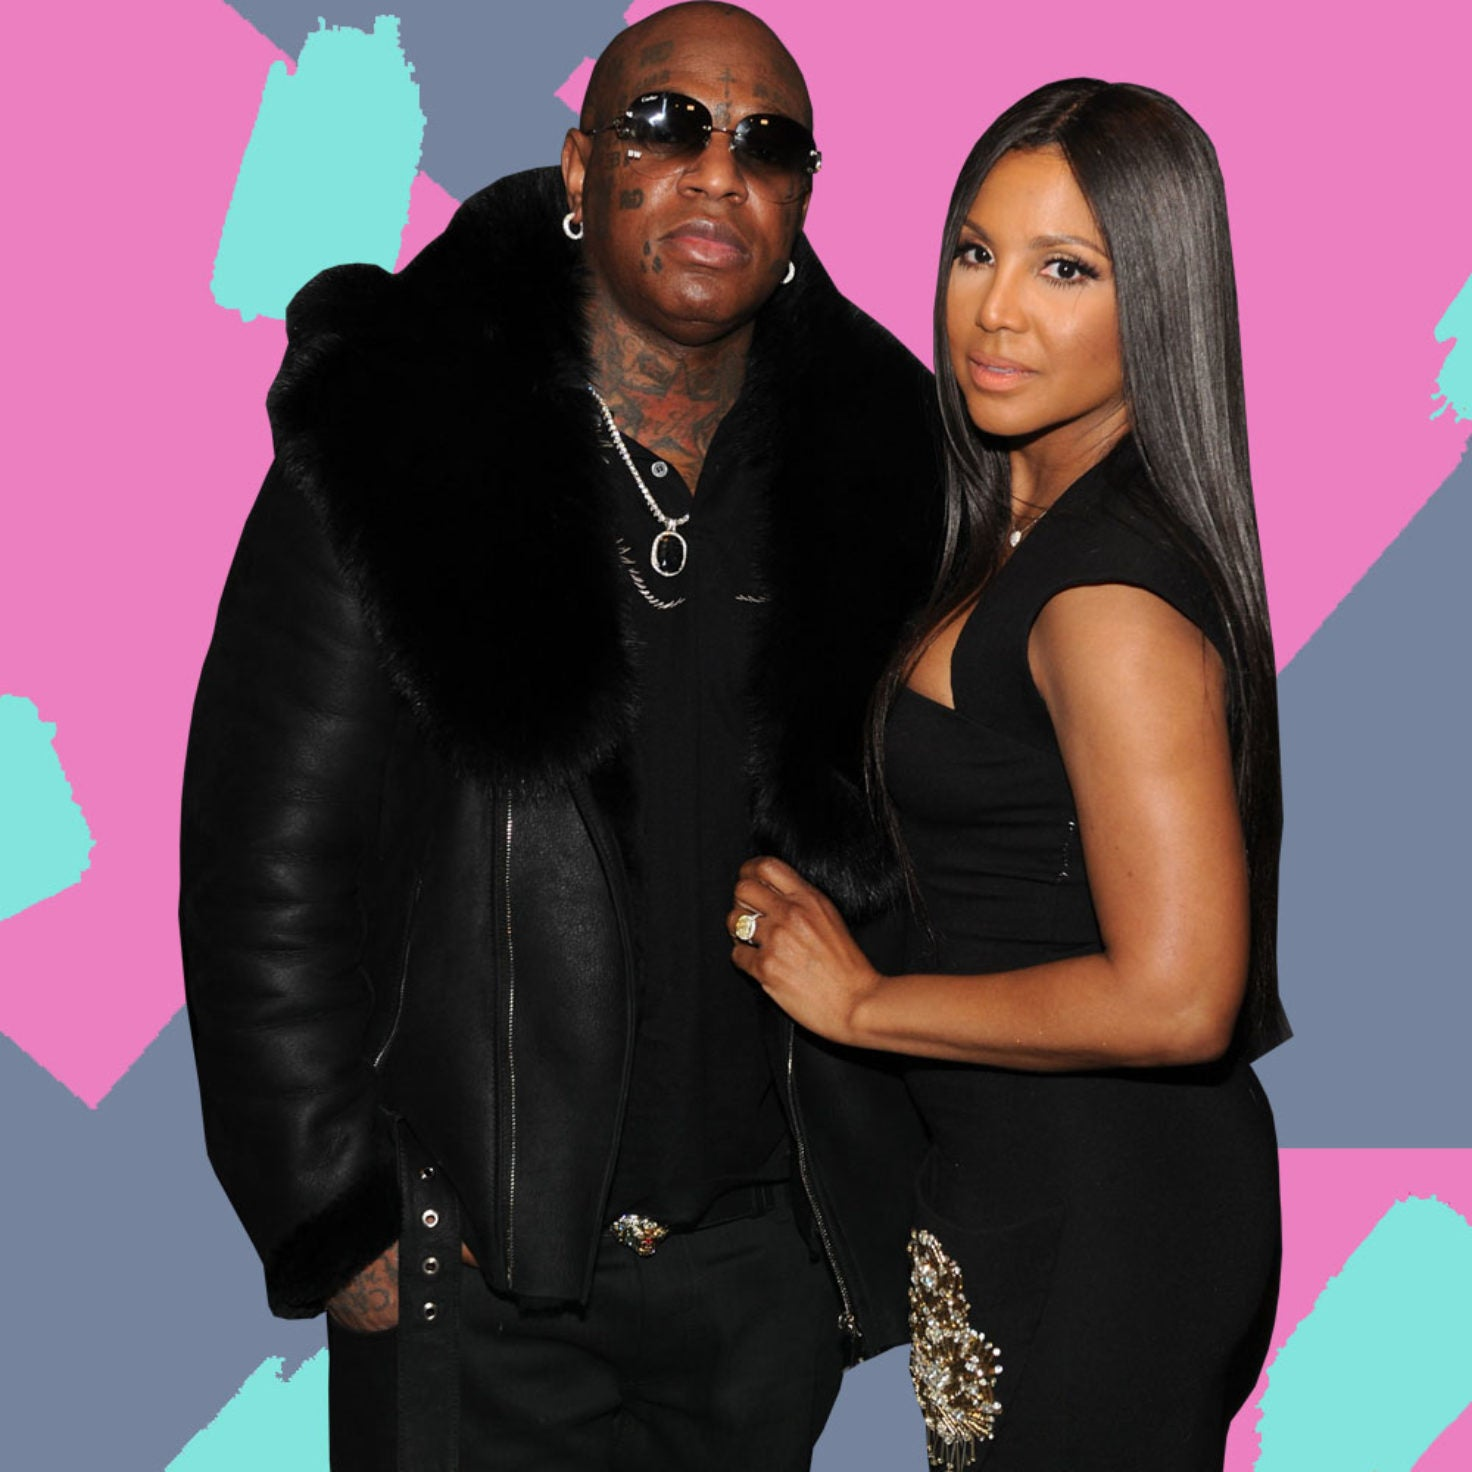 Finally! Toni Braxton Confirms Her Engagement To Birdman